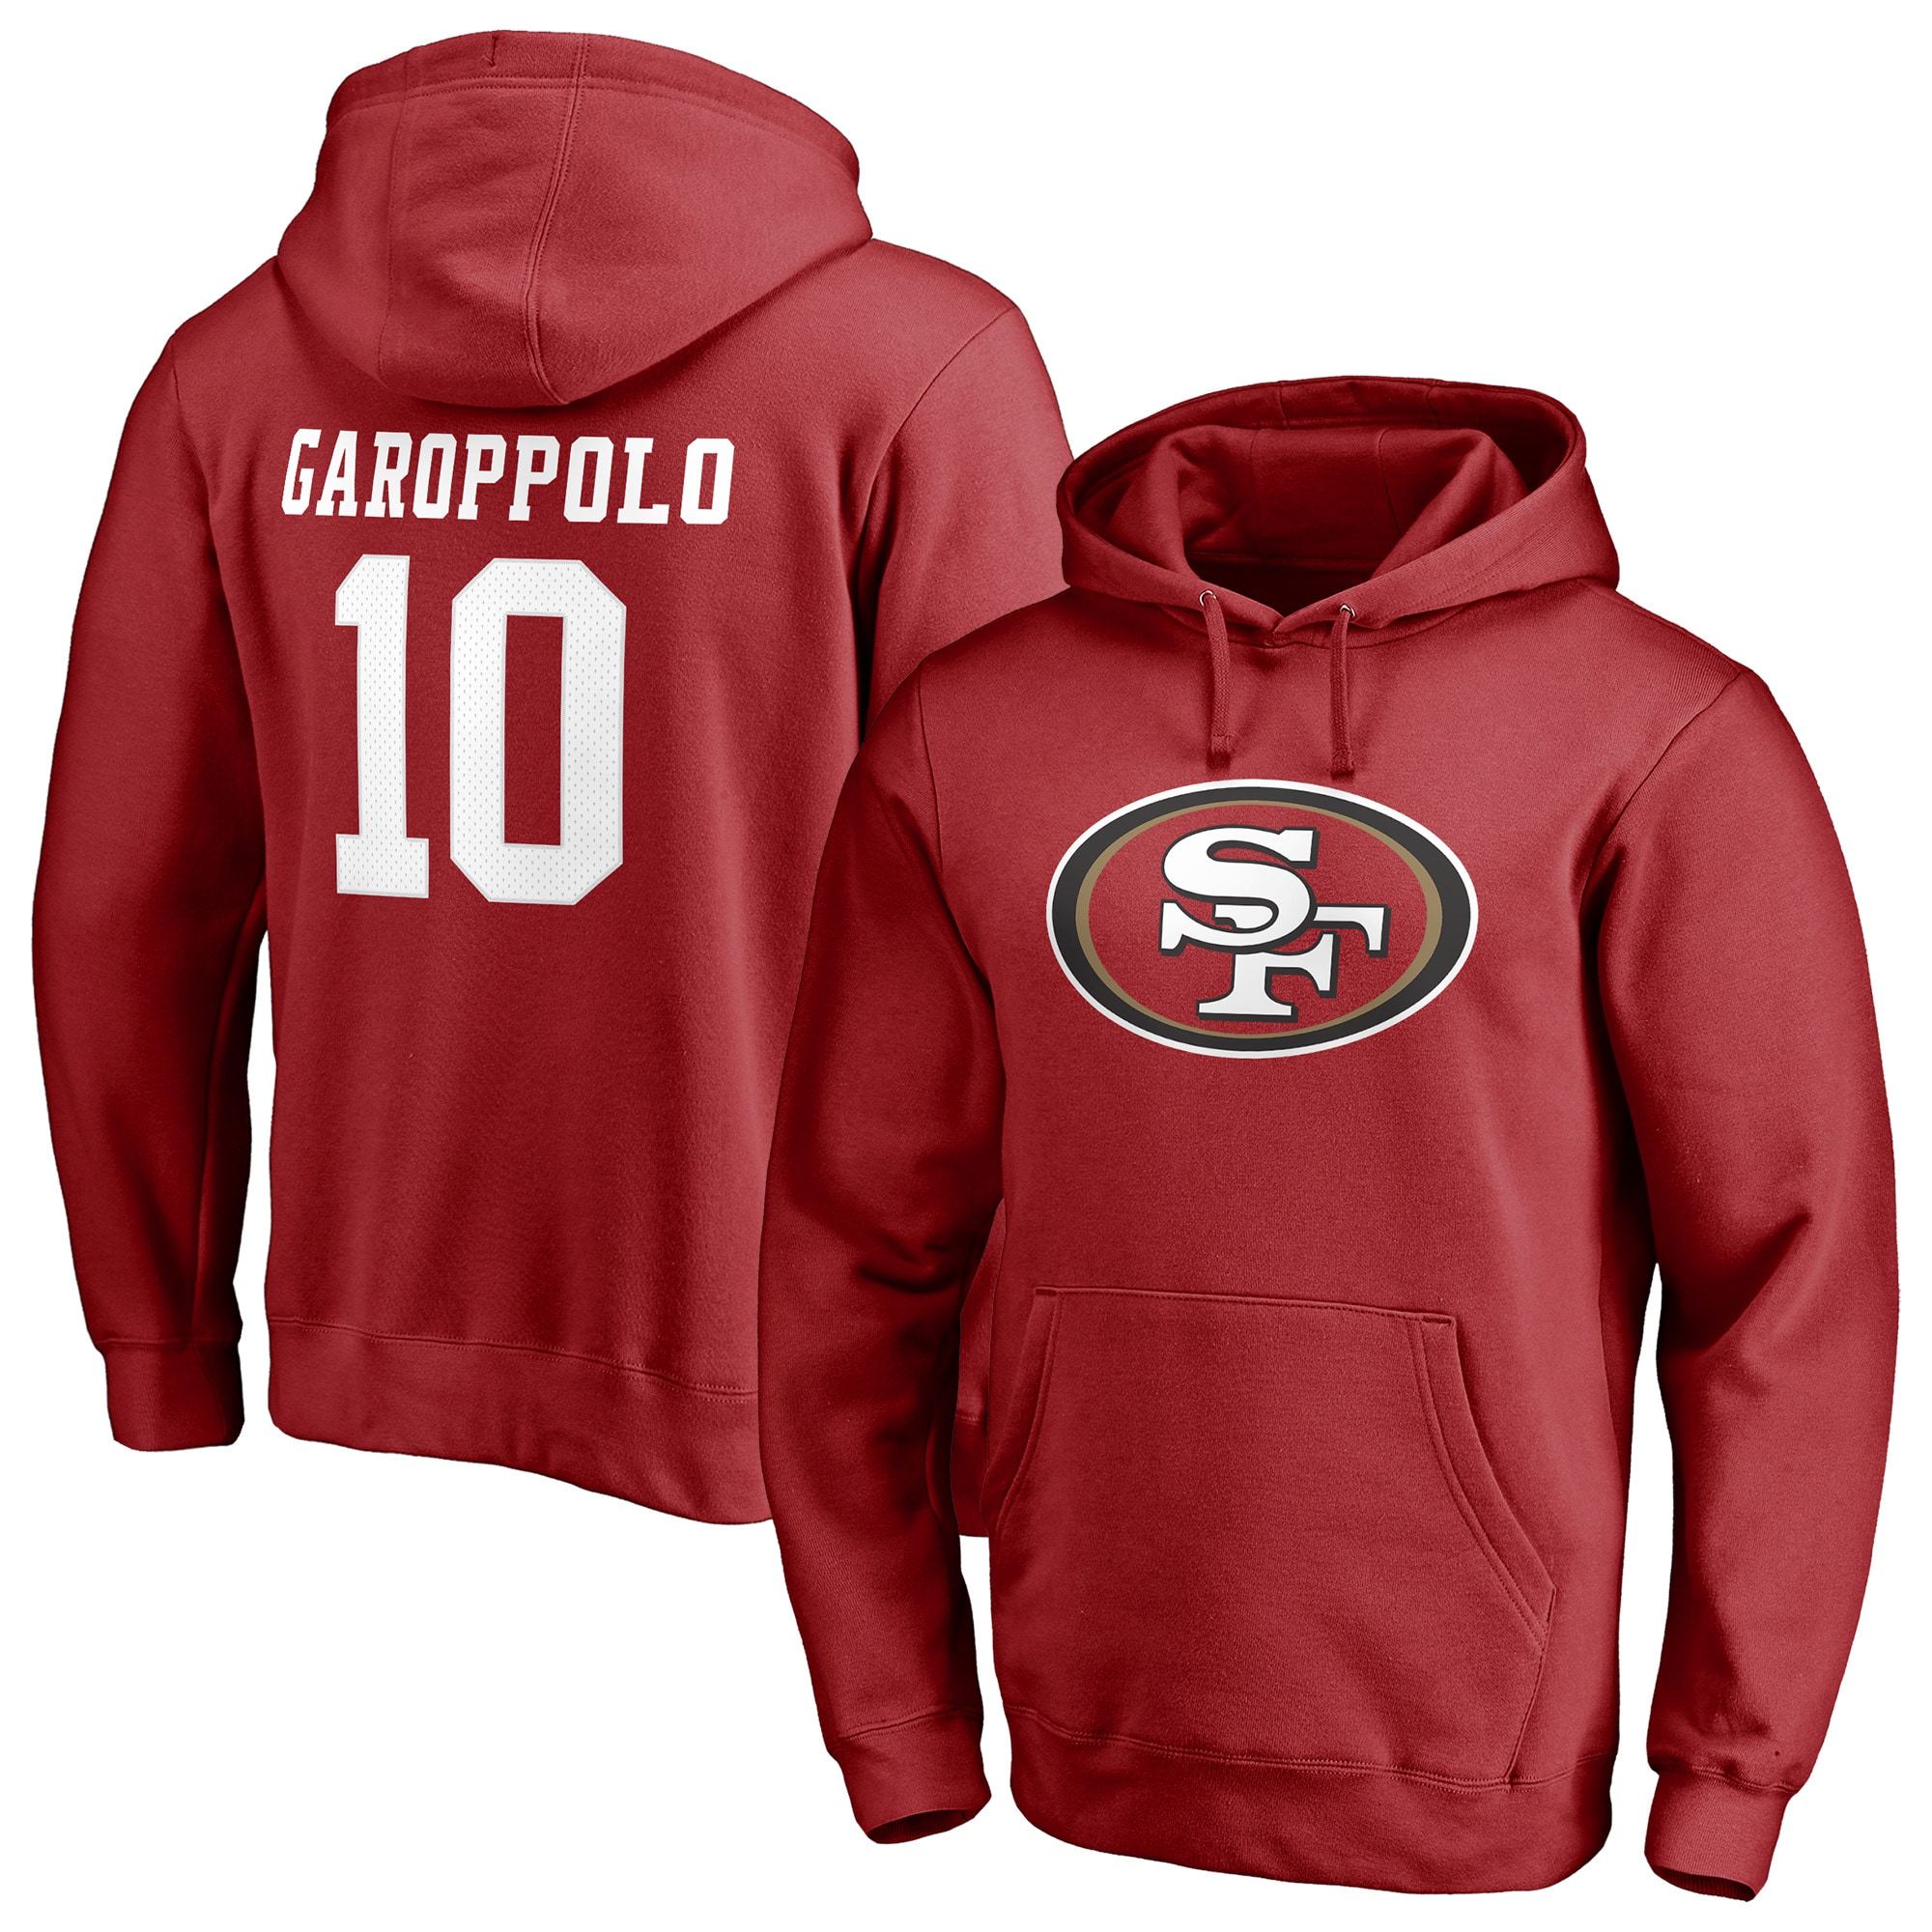 Jimmy Garoppolo San Francisco 49ers NFL Pro Line by Fanatics Branded Player Icon Name & Number Pullover Hoodie - Red